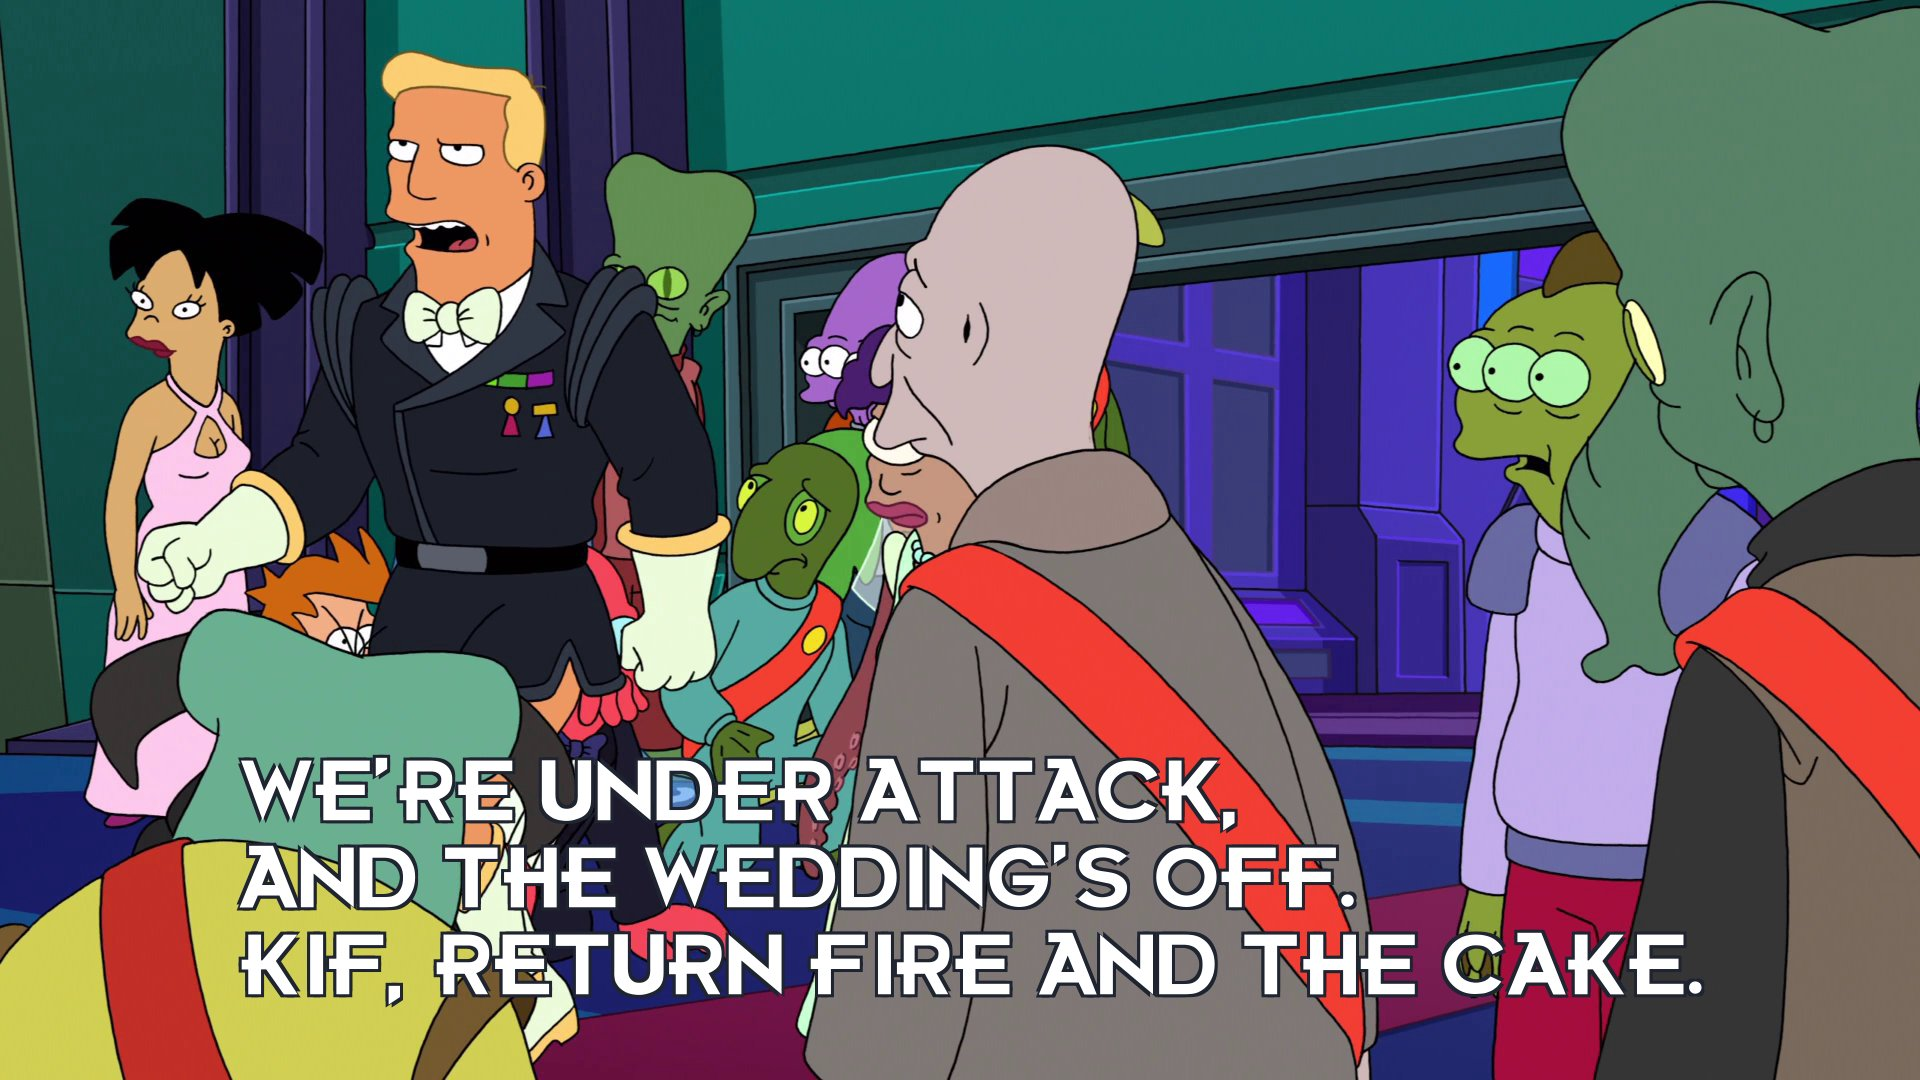 Zapp Brannigan: We're under attack, and the wedding's off. Kif, return fire and the cake.